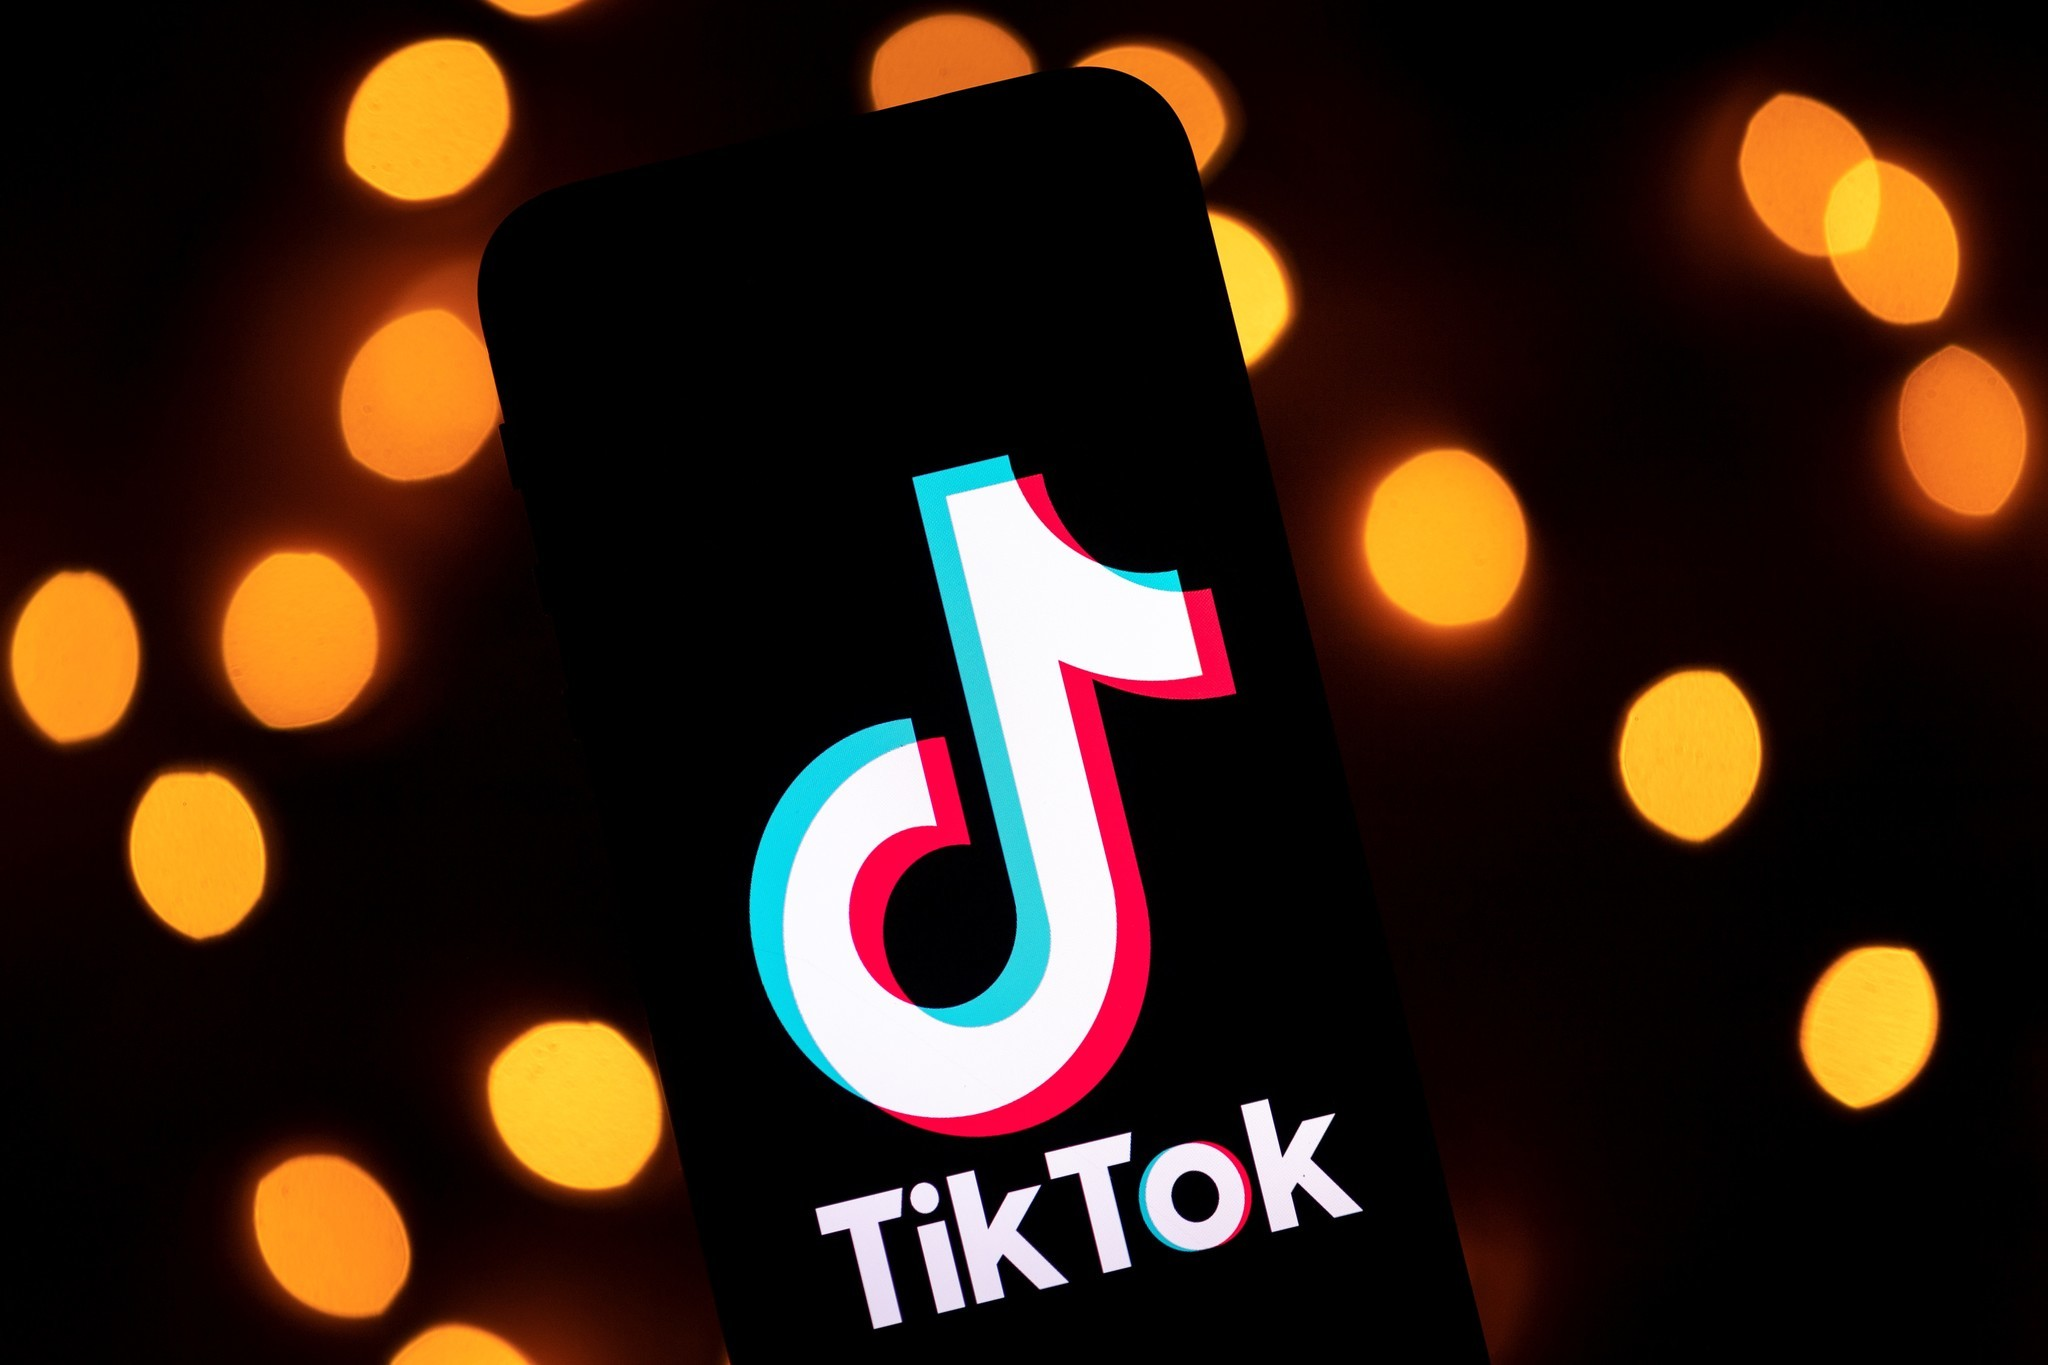 TSA's use of TikTok social media app raises concerns about Chinese spies